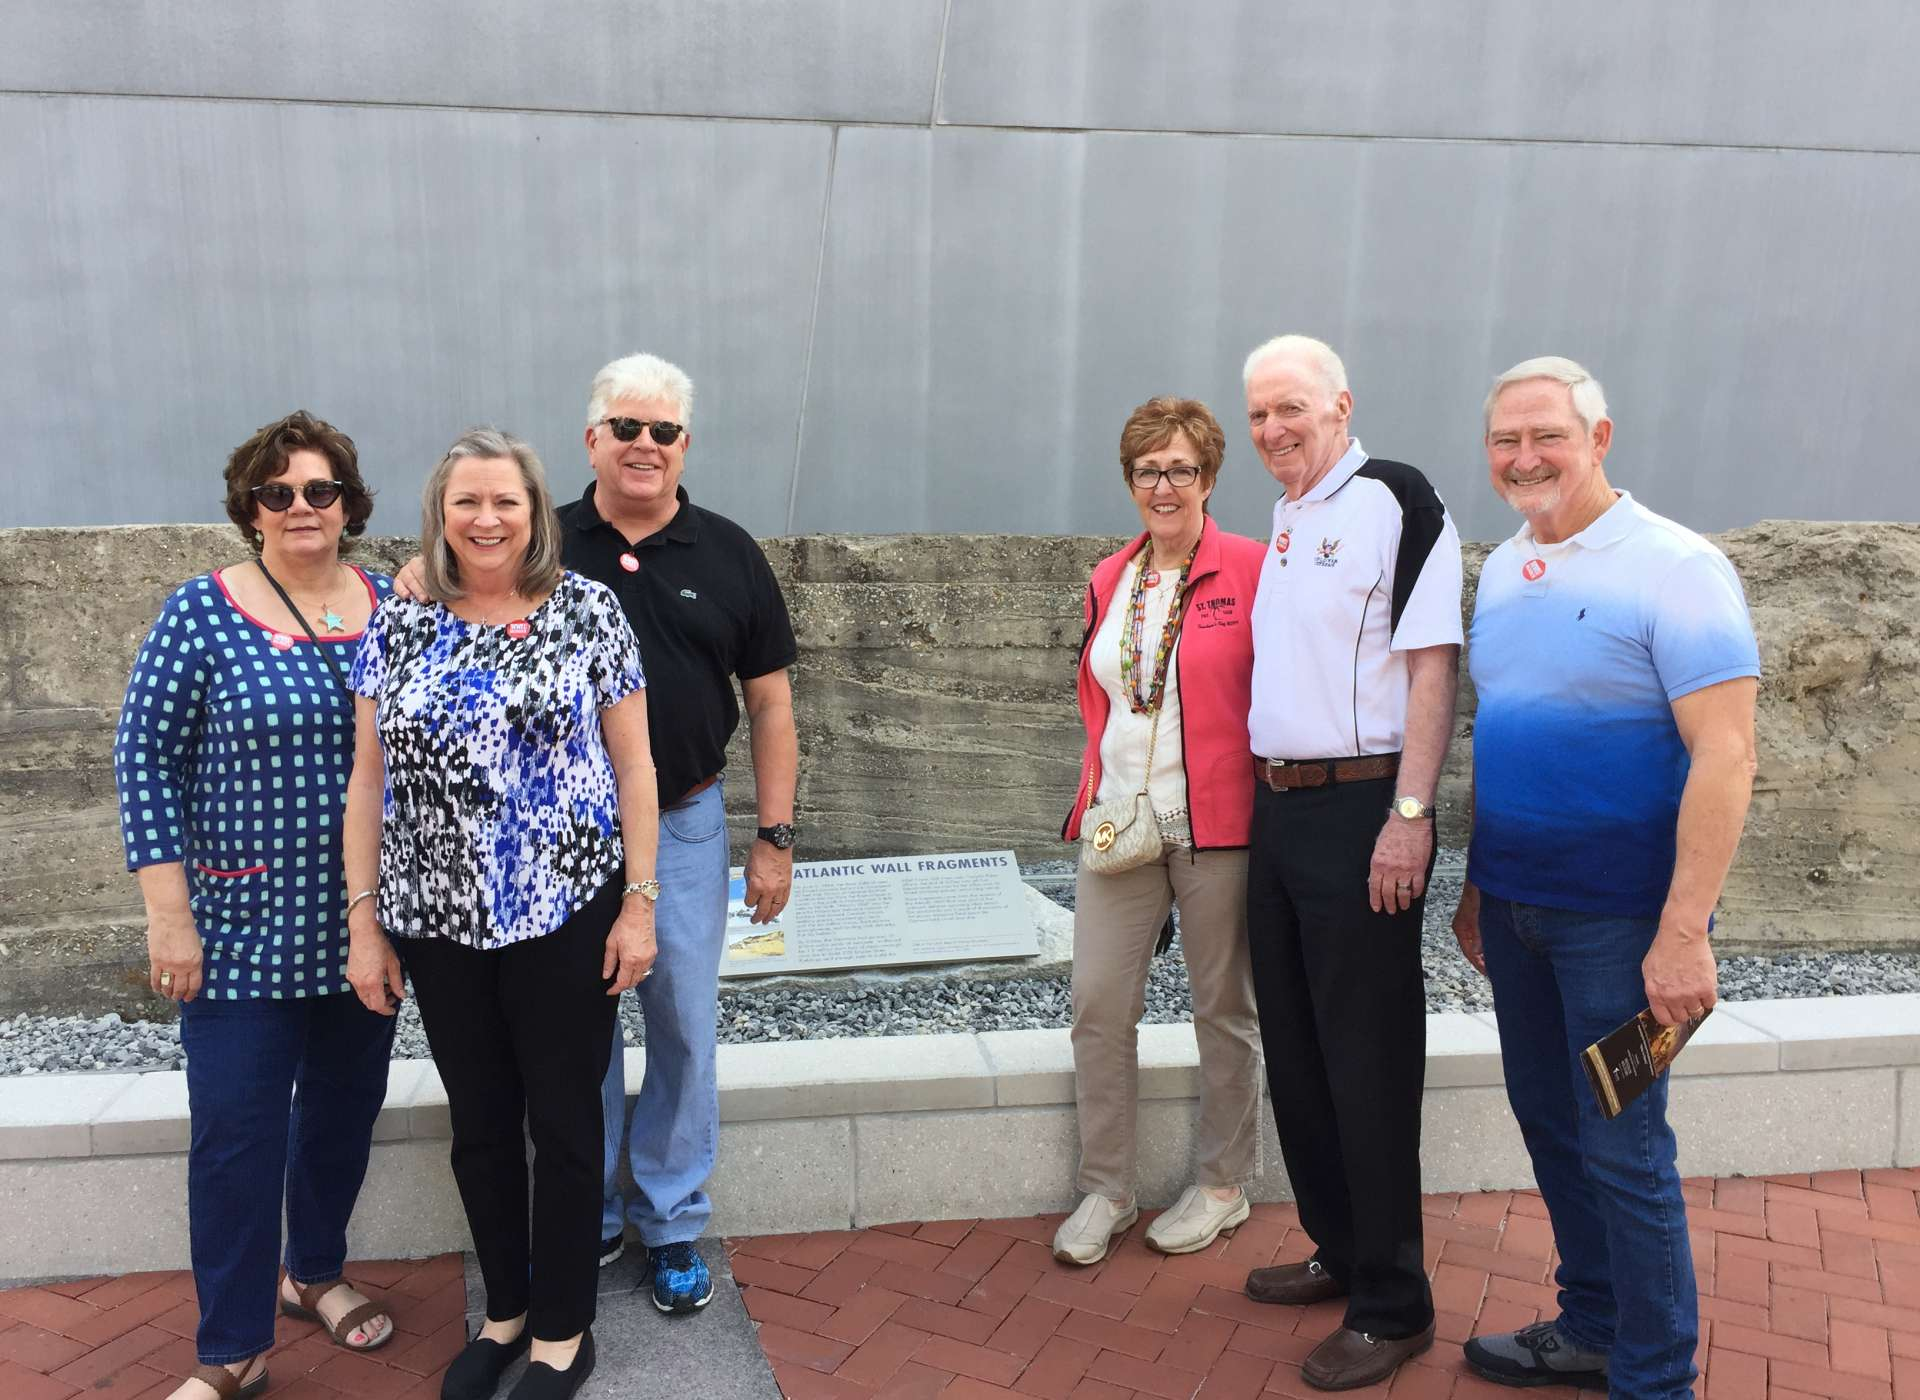 Patriots Circle members at Atlantic Wall